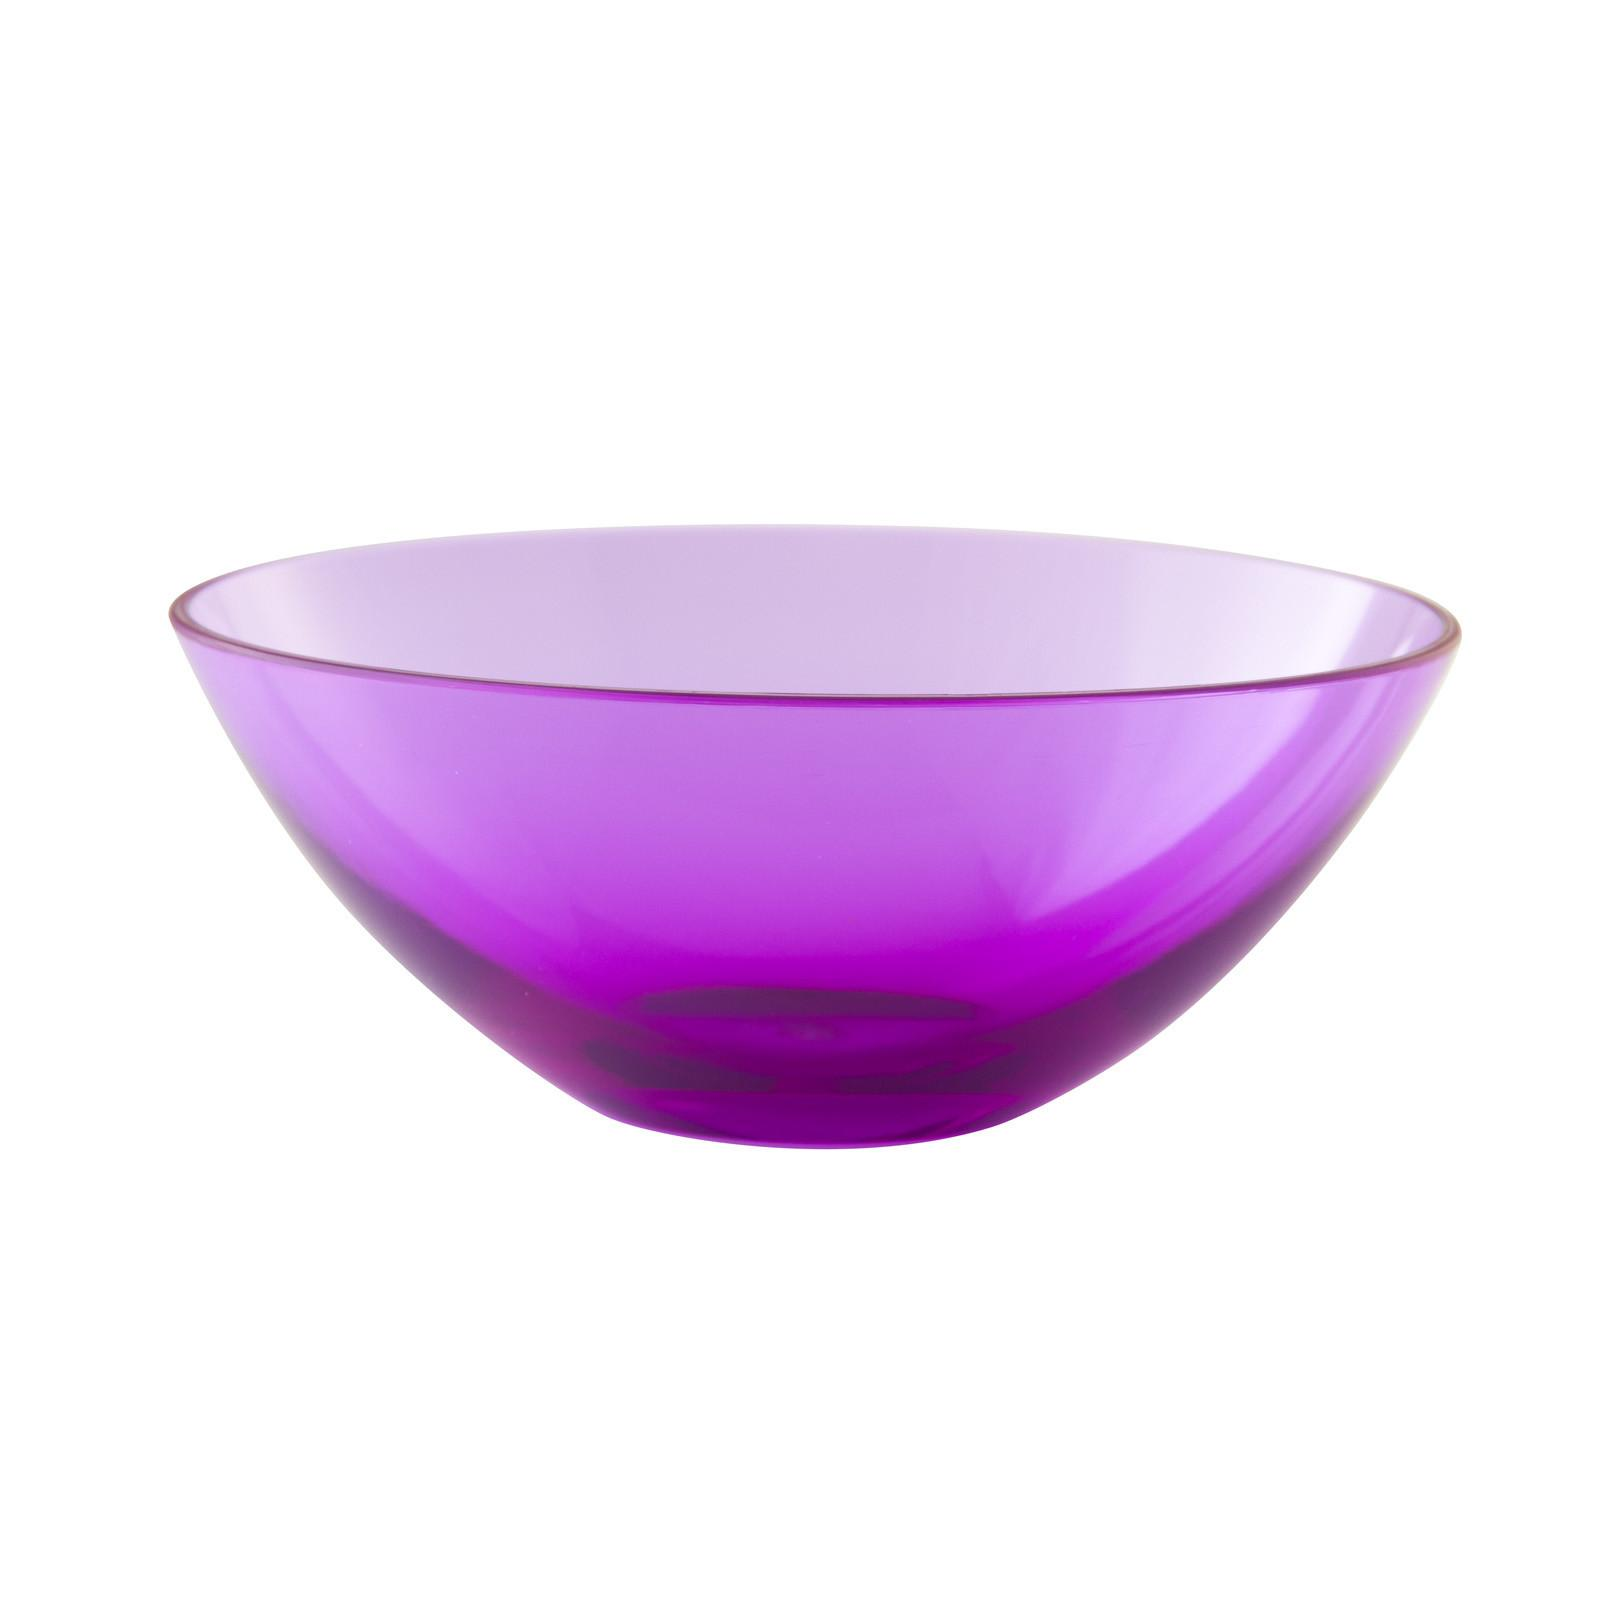 Zak Designs Orb Medium Oval Serving Bowl Inch Orchid